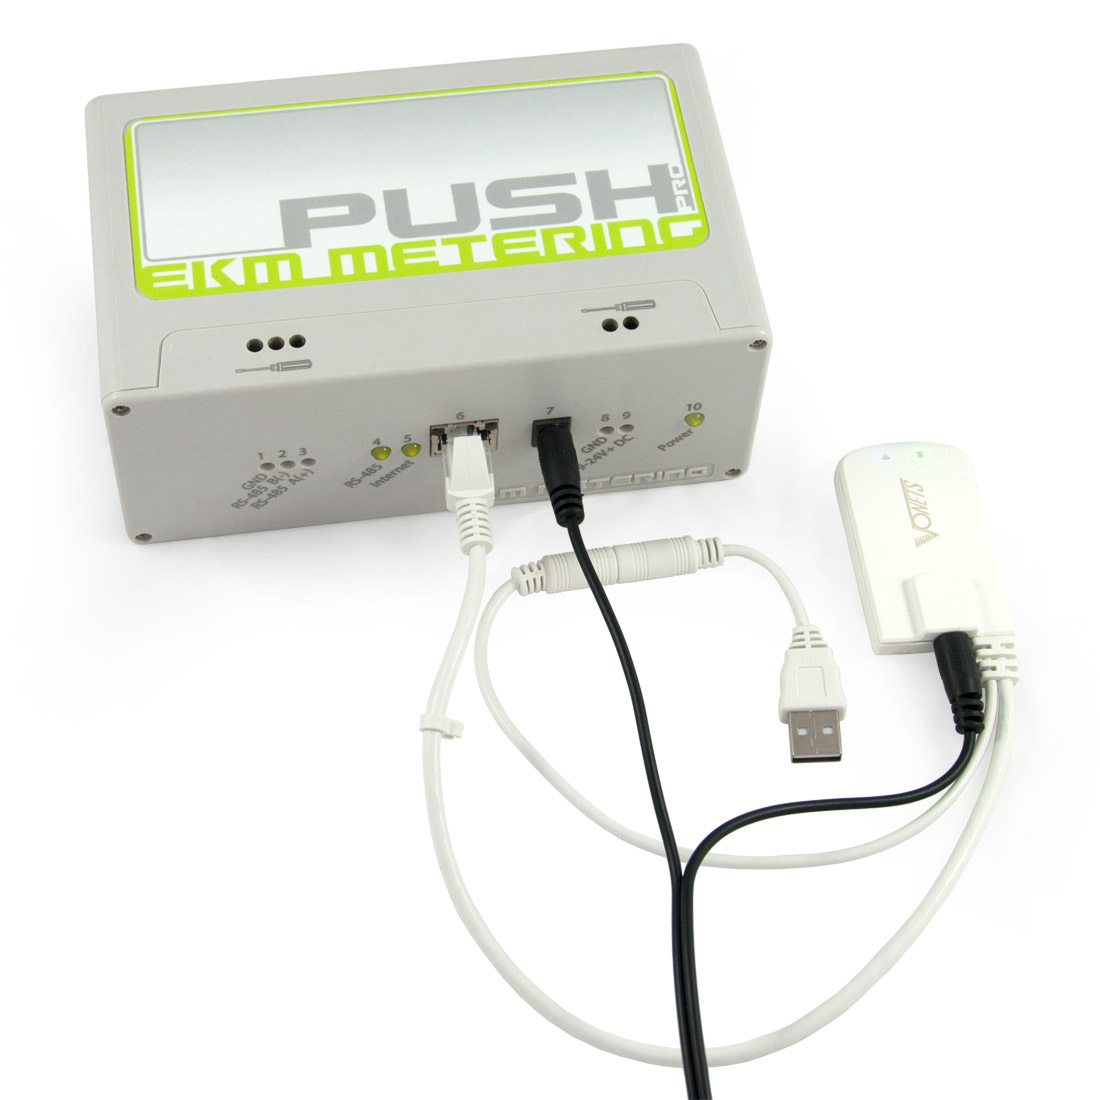 How To Set Up The Vonets Wifi Bridge Ekm Support Desk Install An Ethernet Jack Now You Can This Device On Anything That Has And It Will Be Able Connect Internet Over Your Local Network